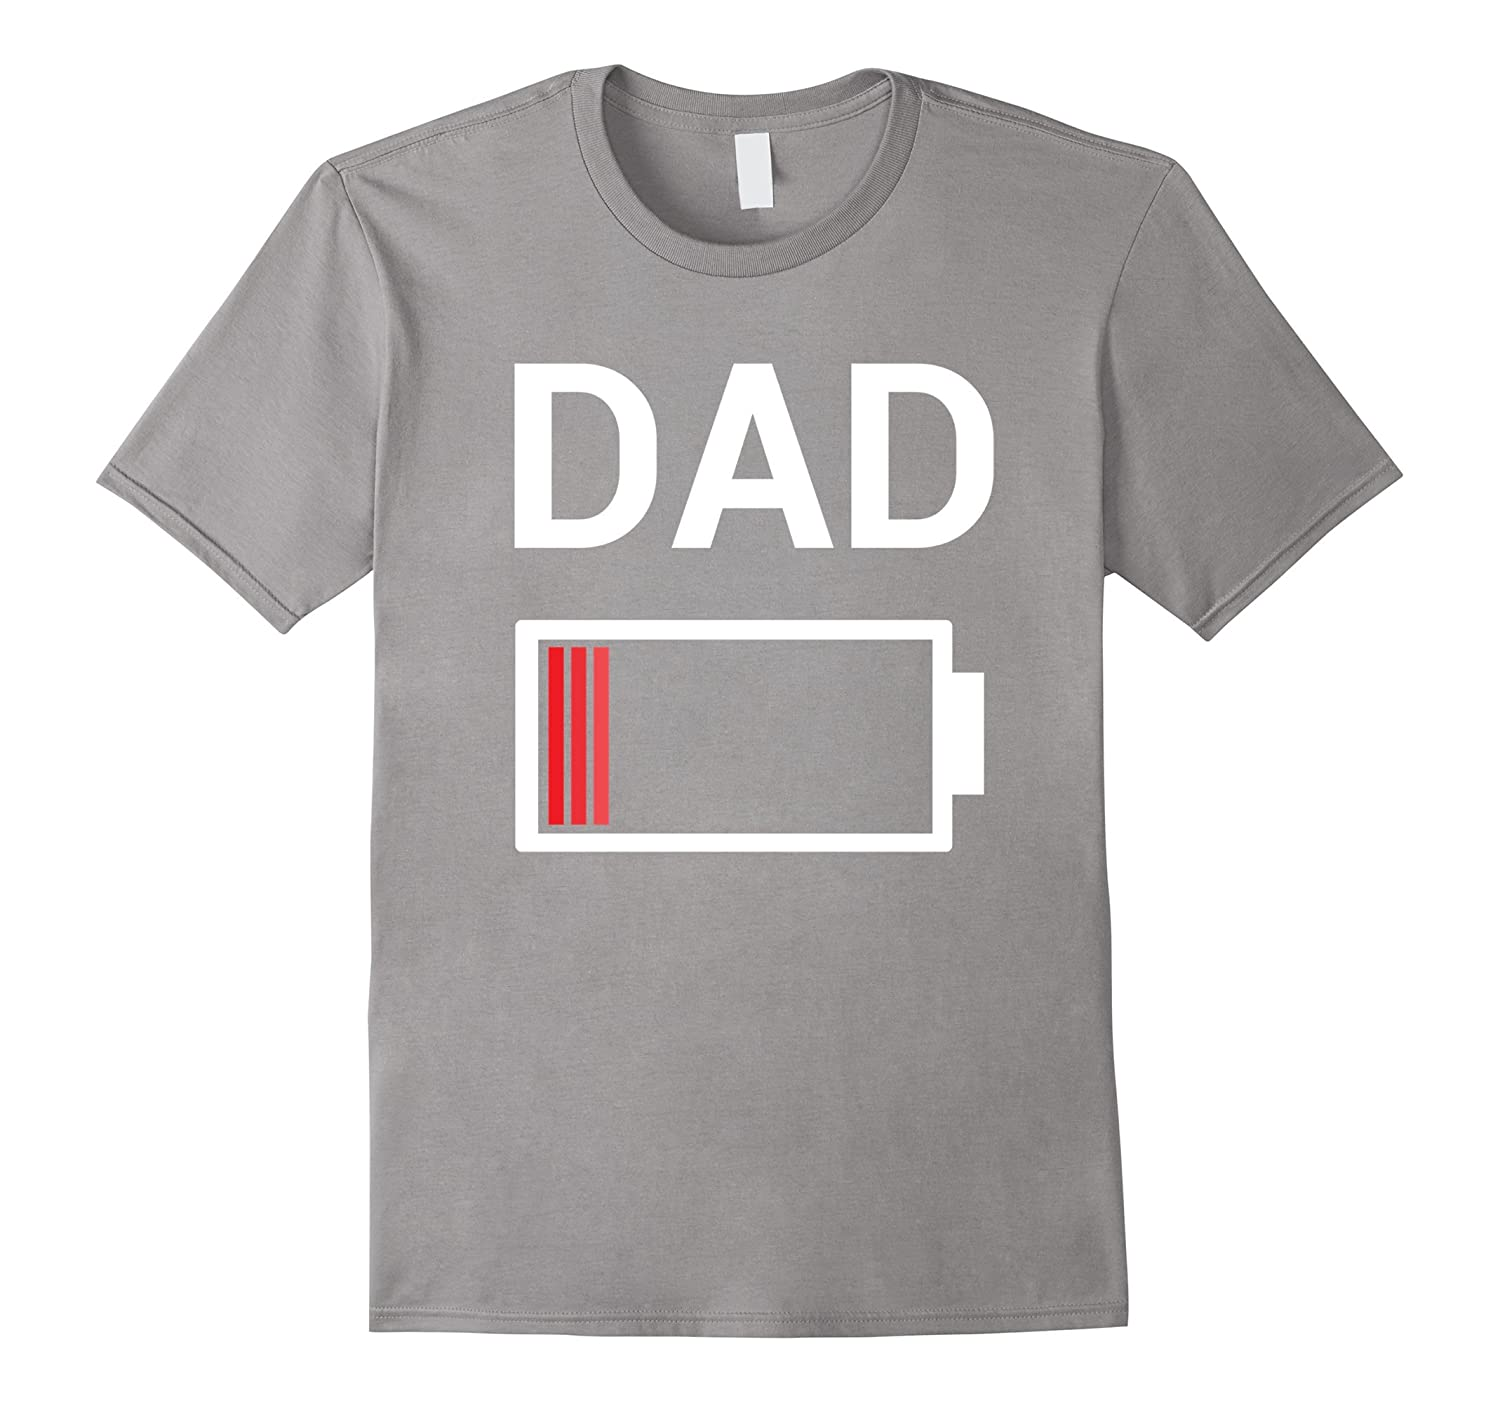 f97a4a3181 Low Battery Dad Shirt Funny Fathers Day Gift Daddy Stepdad-BN ...